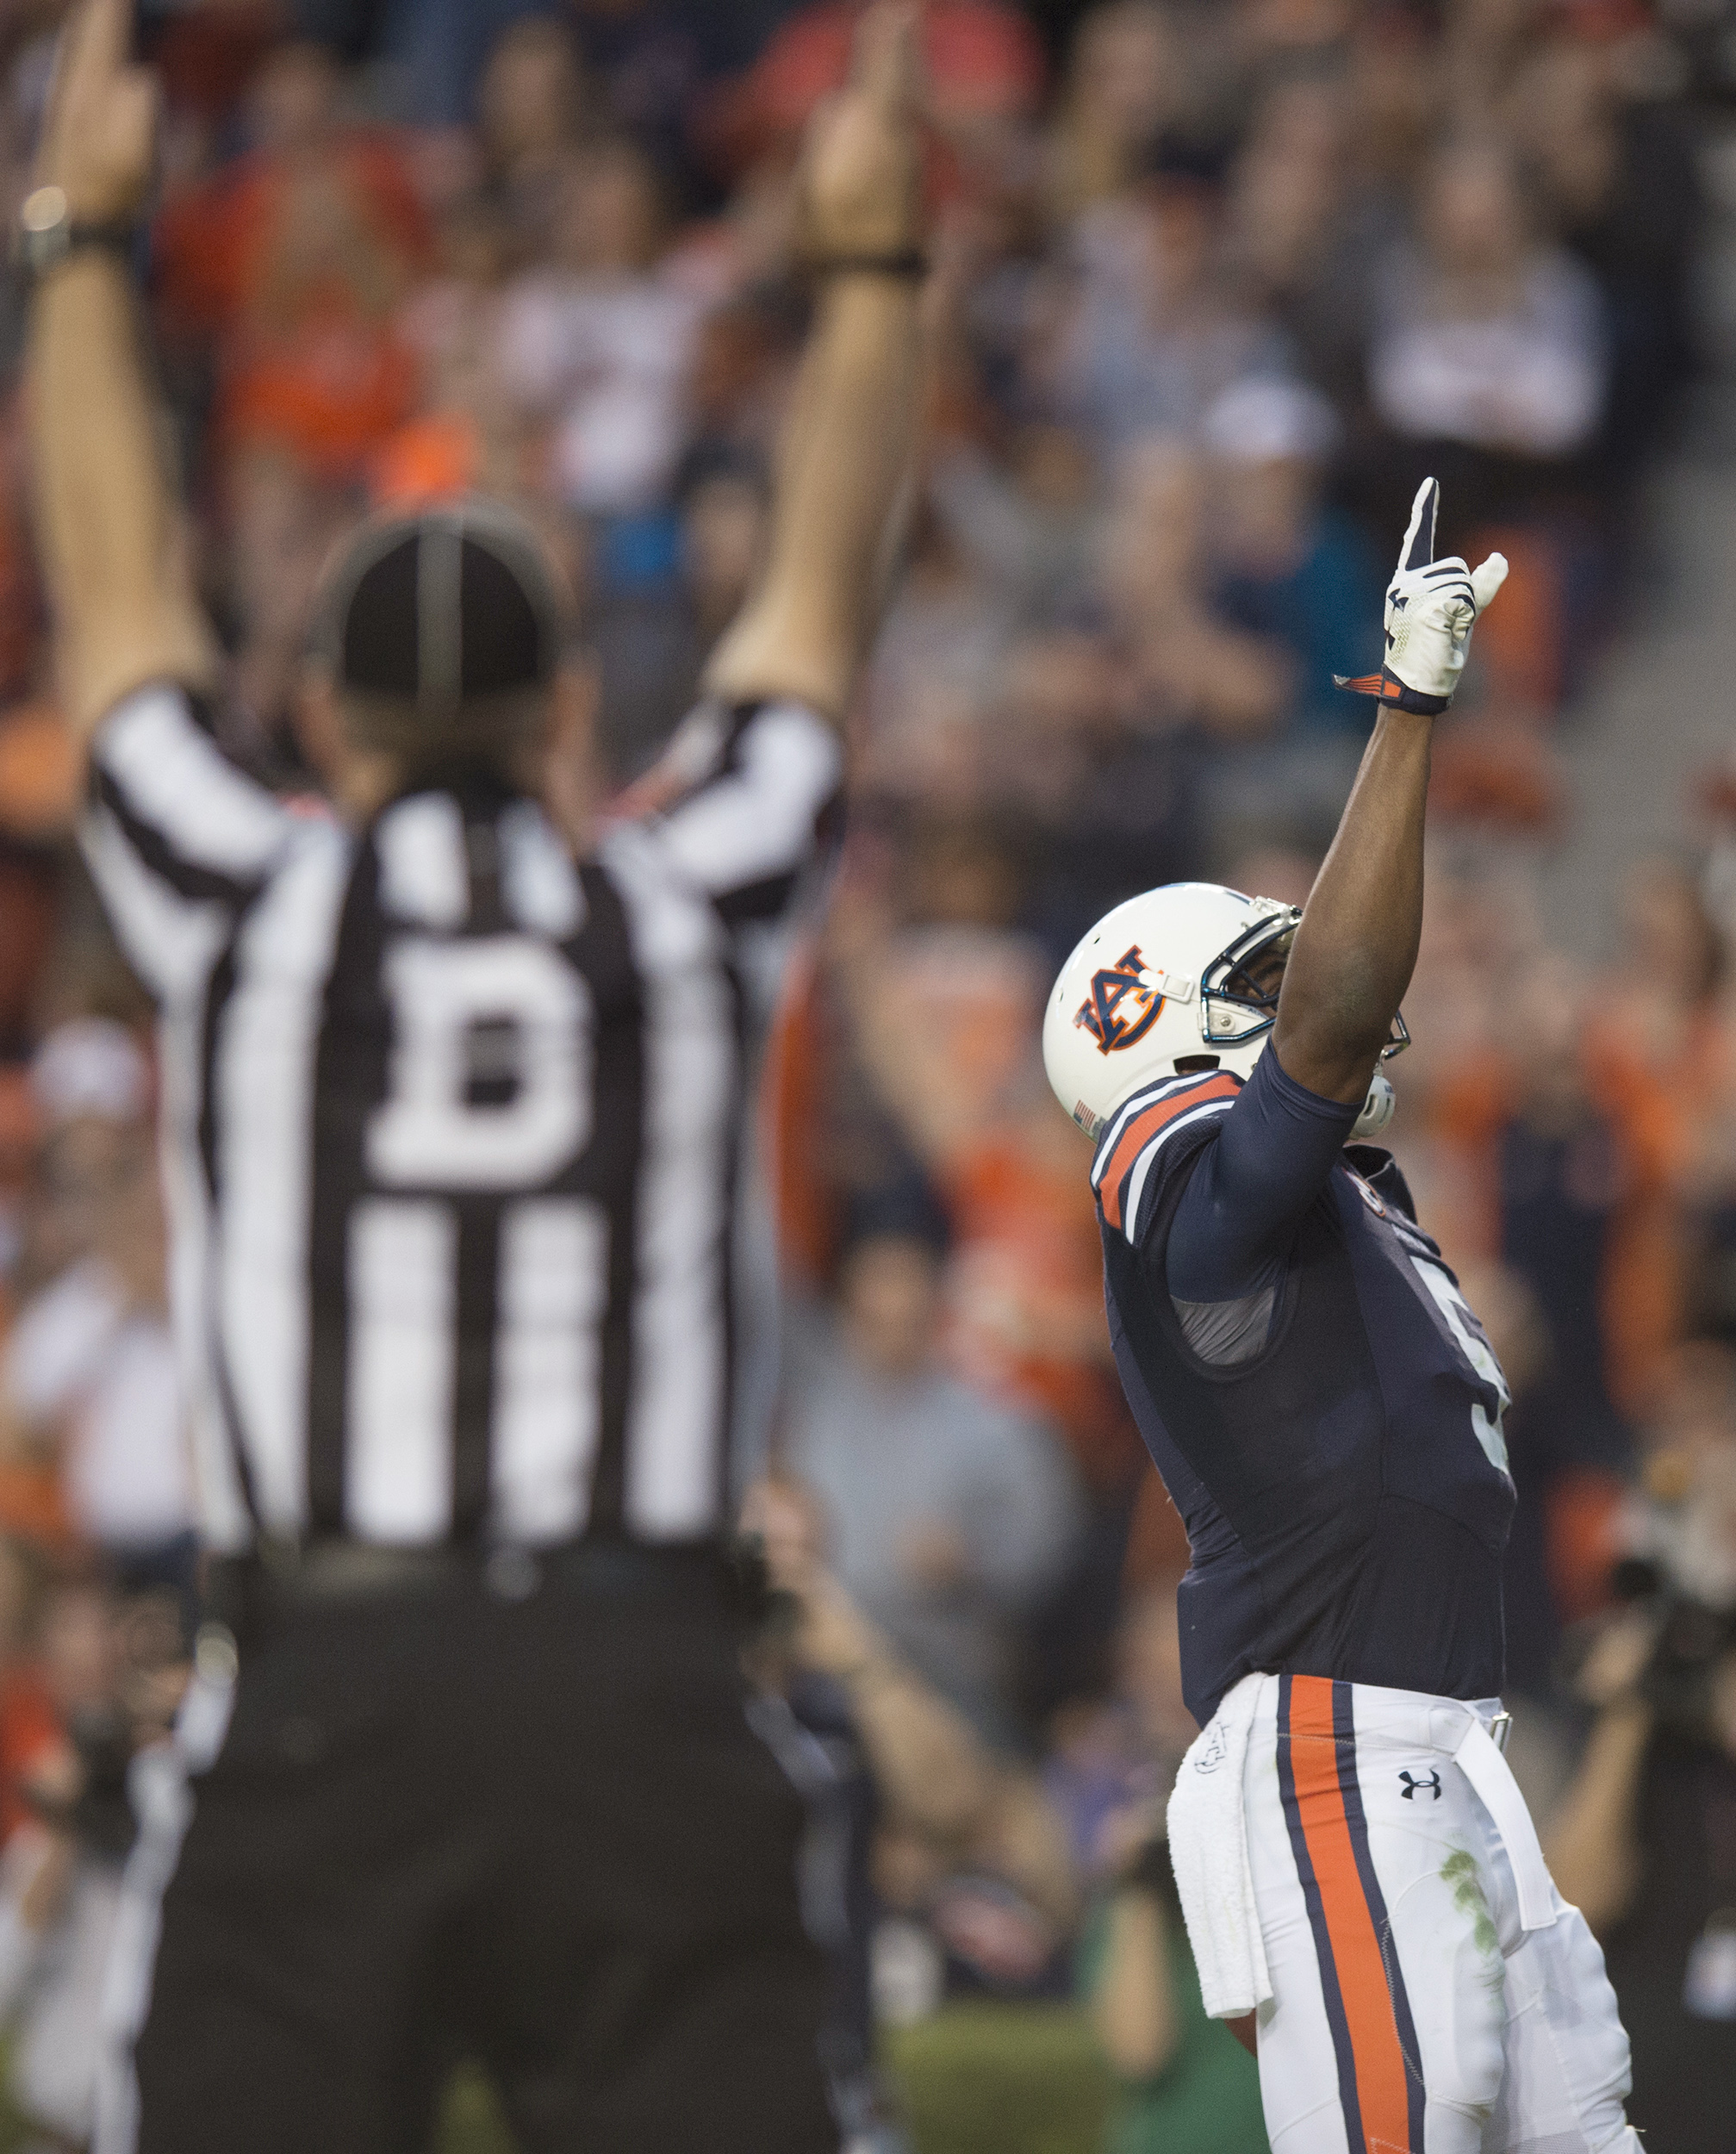 Auburn wide receiver Ricardo Louis (5) celebrates after catching a touchdown pass against Idaho during an NCAA college football game Saturday, Nov. 21, 2015, in Auburn, Ala. (Albert Cesare/The Daily Advertiser via AP)